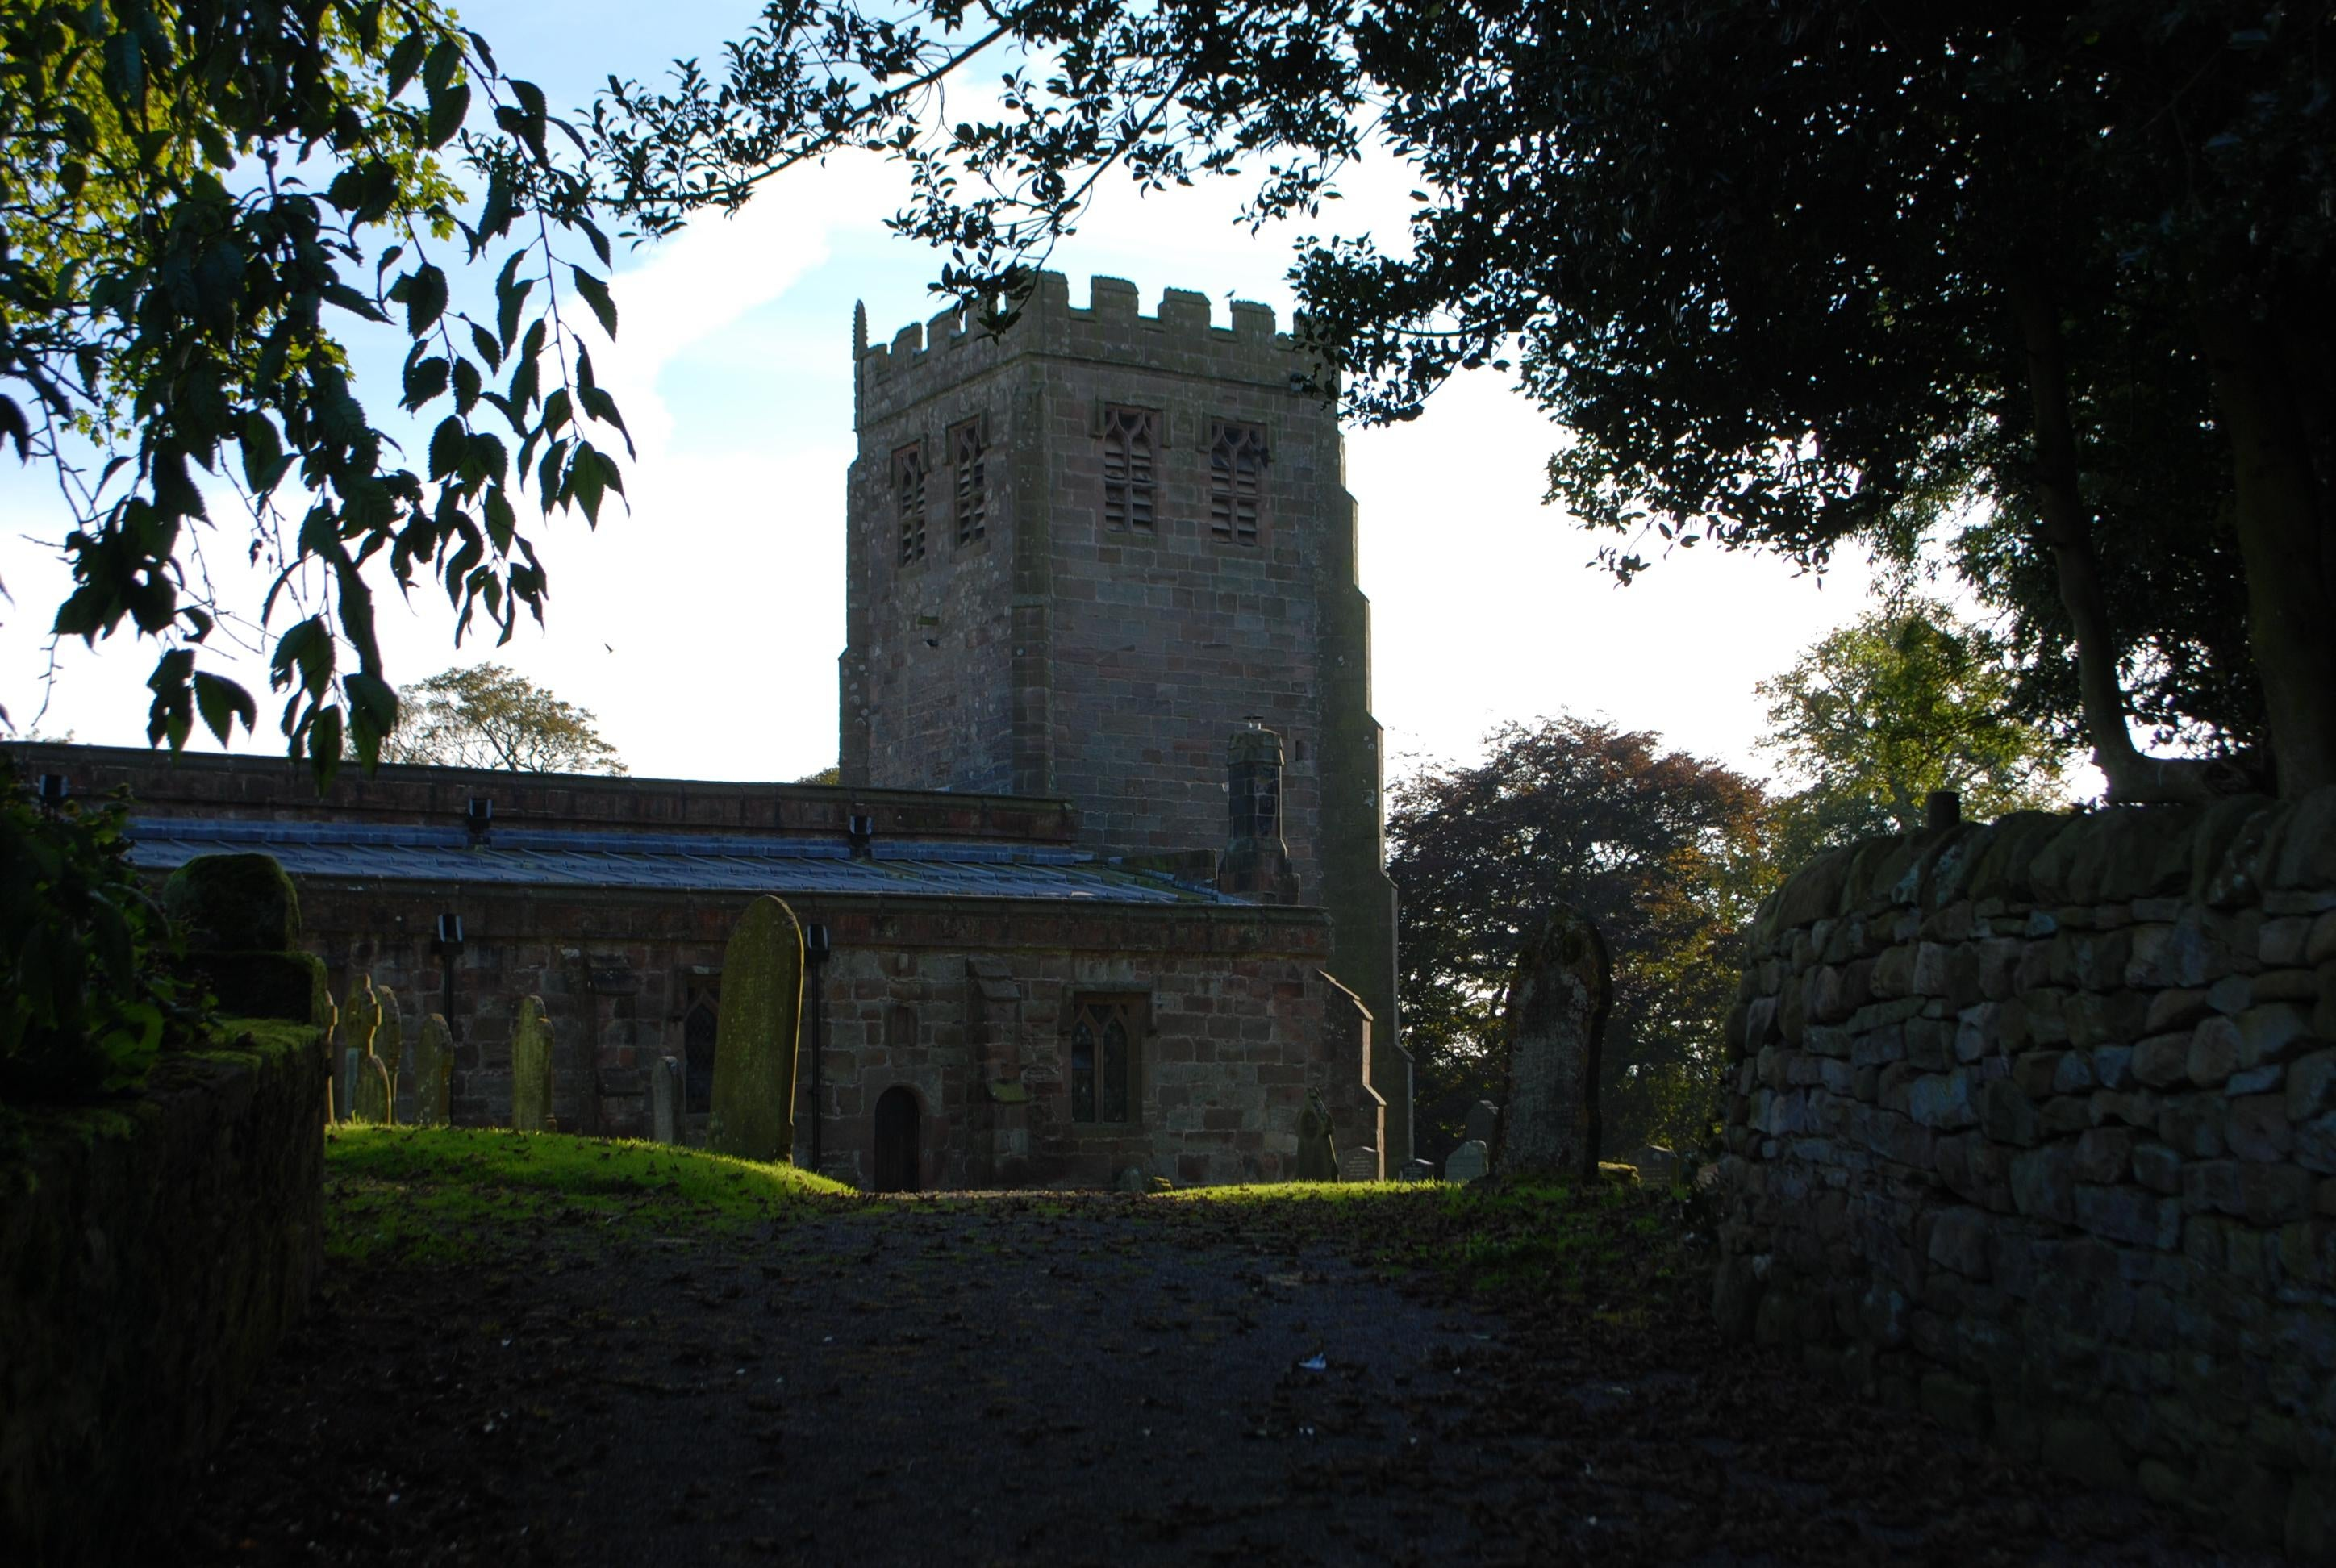 Church of St. Michael Brough